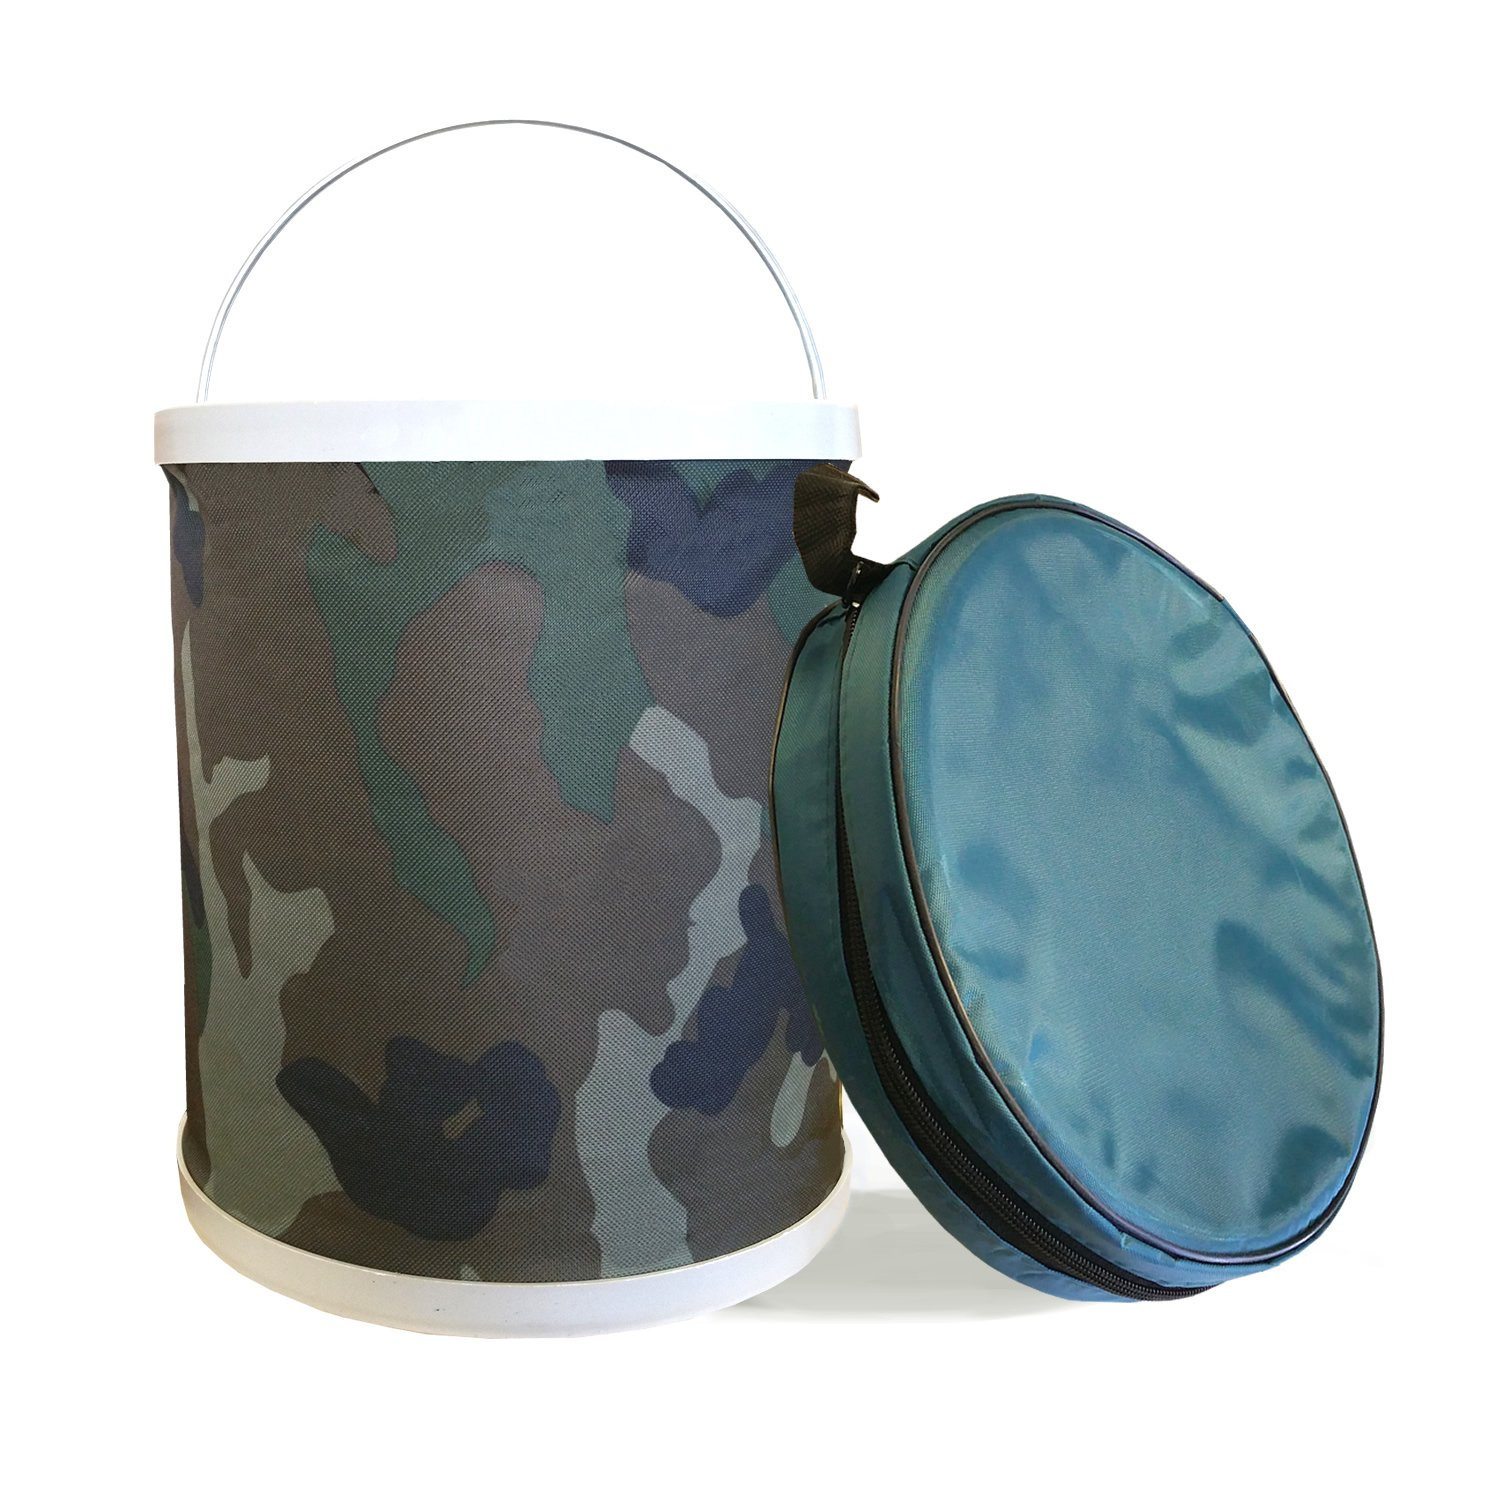 Compact Collapsible Water Bucket by InSassy – Perfect for Camping, Gardening and Outdoors – Durable, Lightweight and Portable Folding Wash Basin Storage Fishing Beach Container – Camo Color